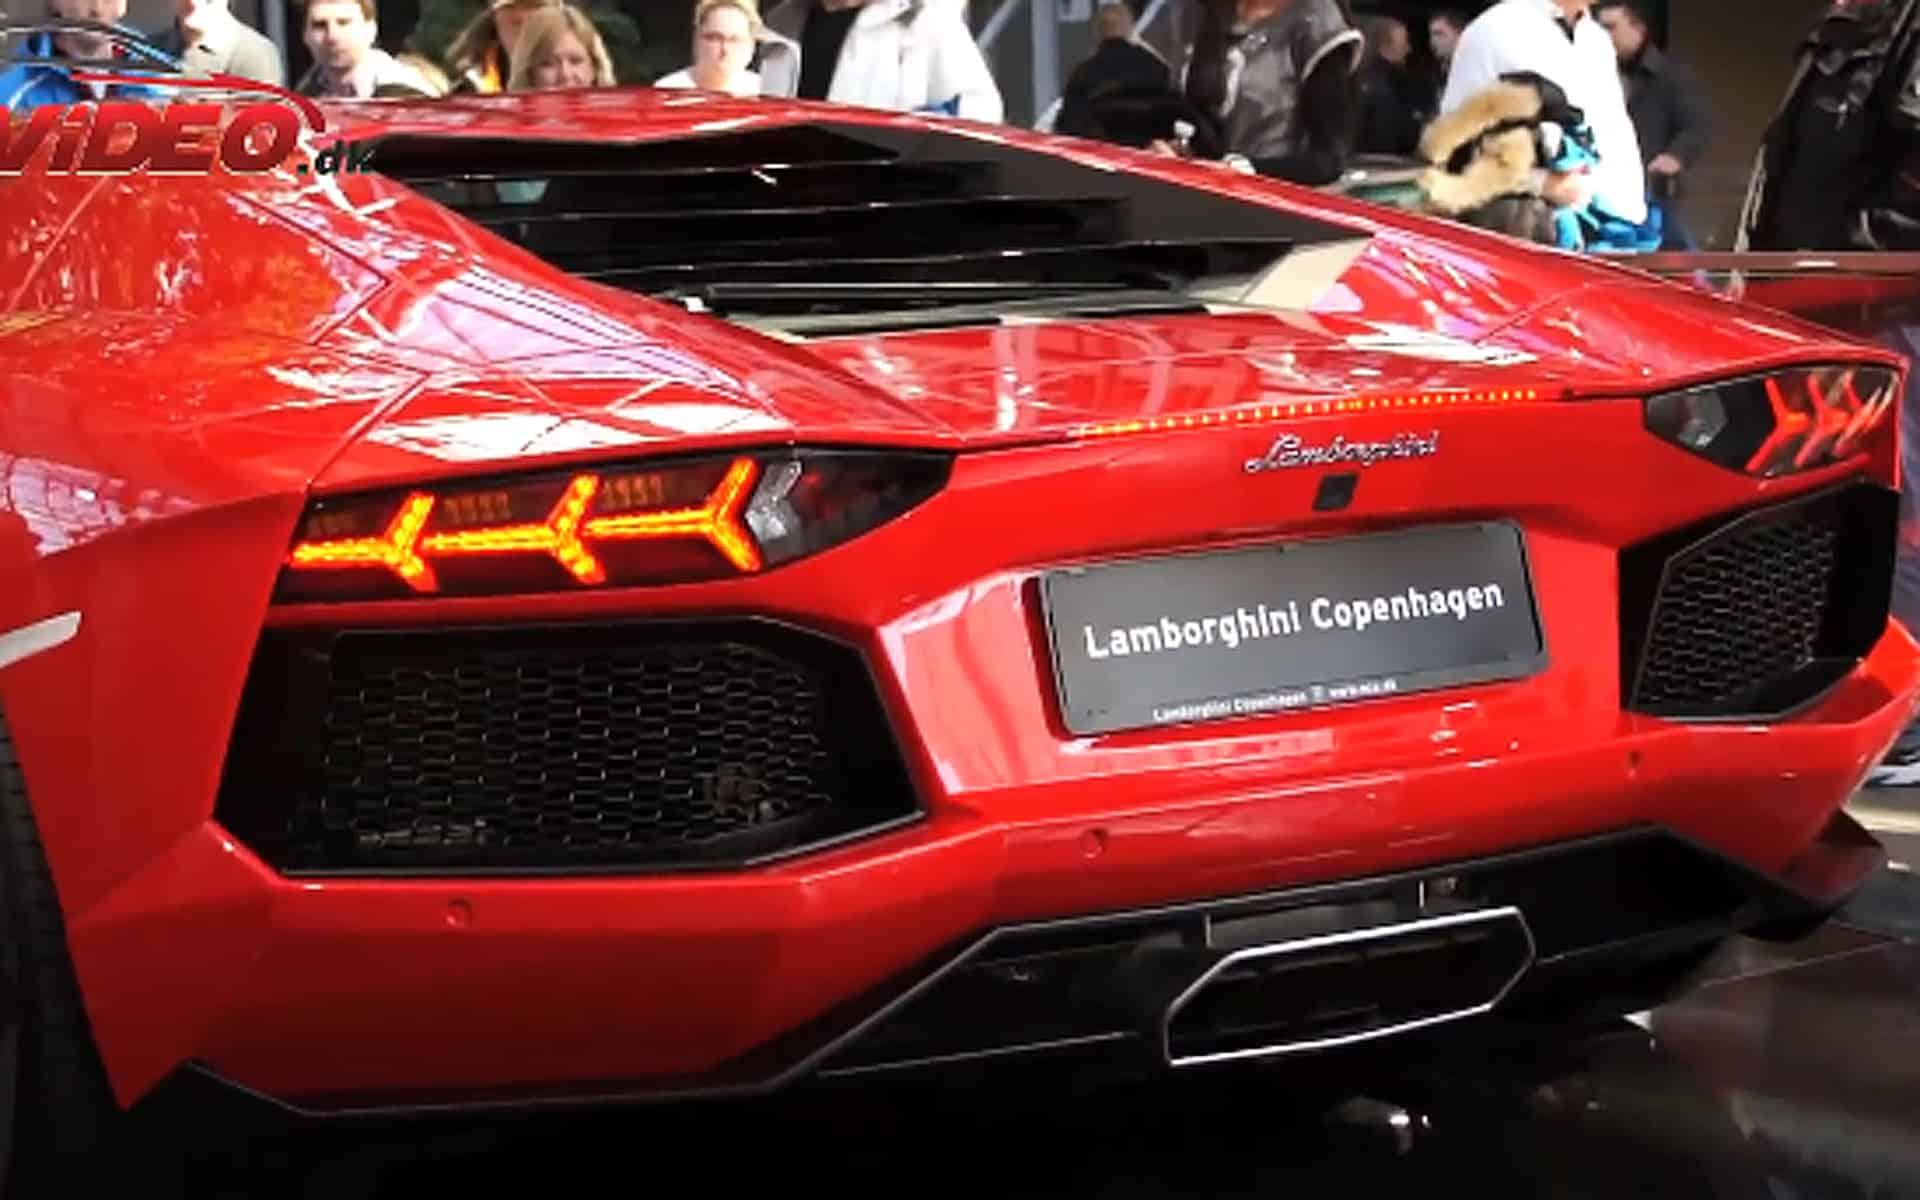 Lamborghini Aventador VS Gallardo Exhaust Sound Duel